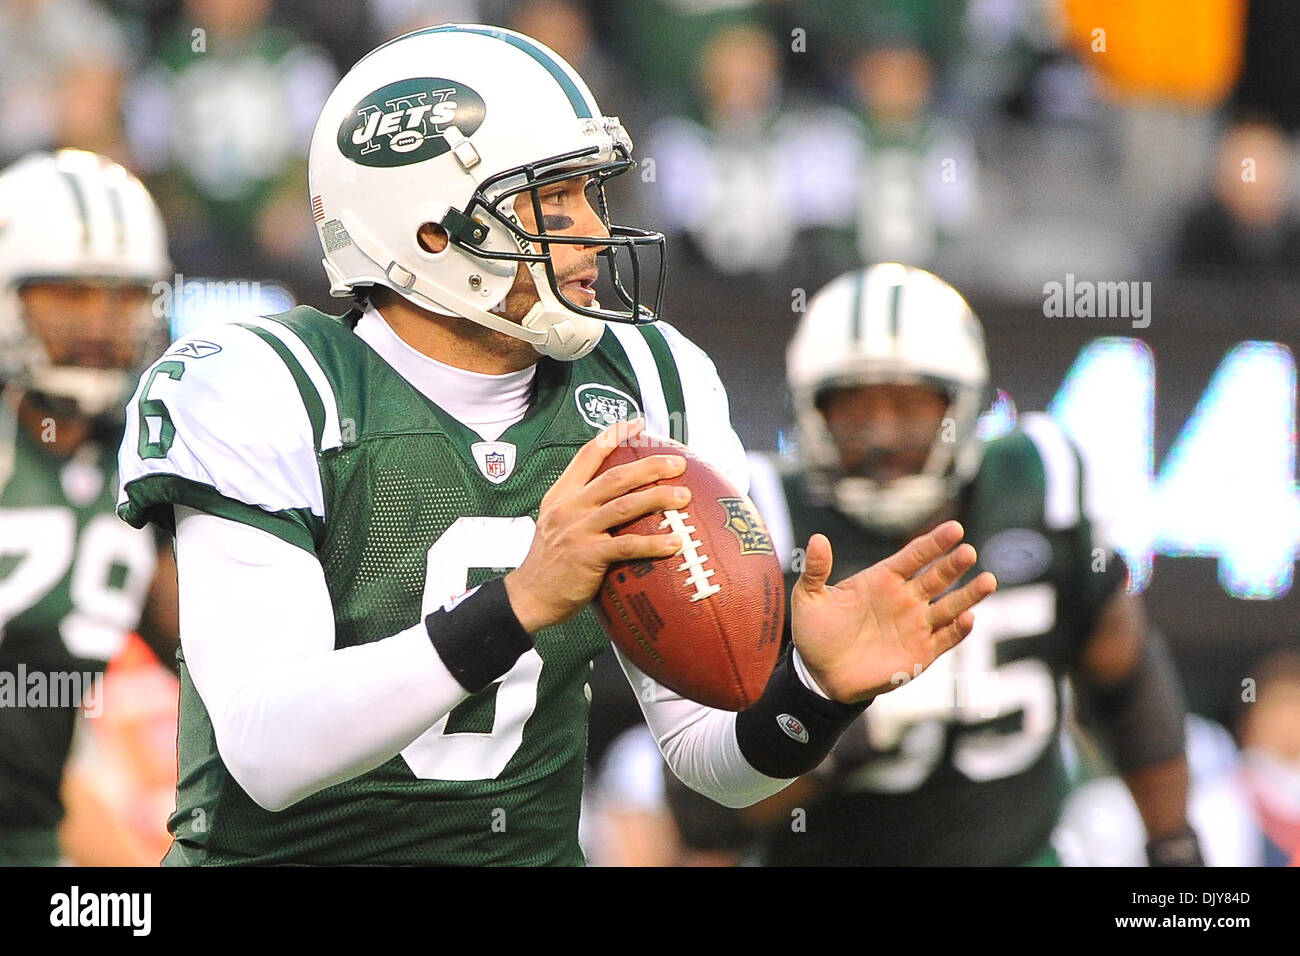 Nov. 21, 2010 - East Rutherford, New Jersey, United States of America - New York Jets quarterback Mark Brunell (8) in action at The New Meadowlands Stadium in East Rutherford New Jersey Houston falls to the 30-27Jets (Credit Image: © Brooks Von Arx/Southcreek Global/ZUMAPRESS.com) - Stock Image